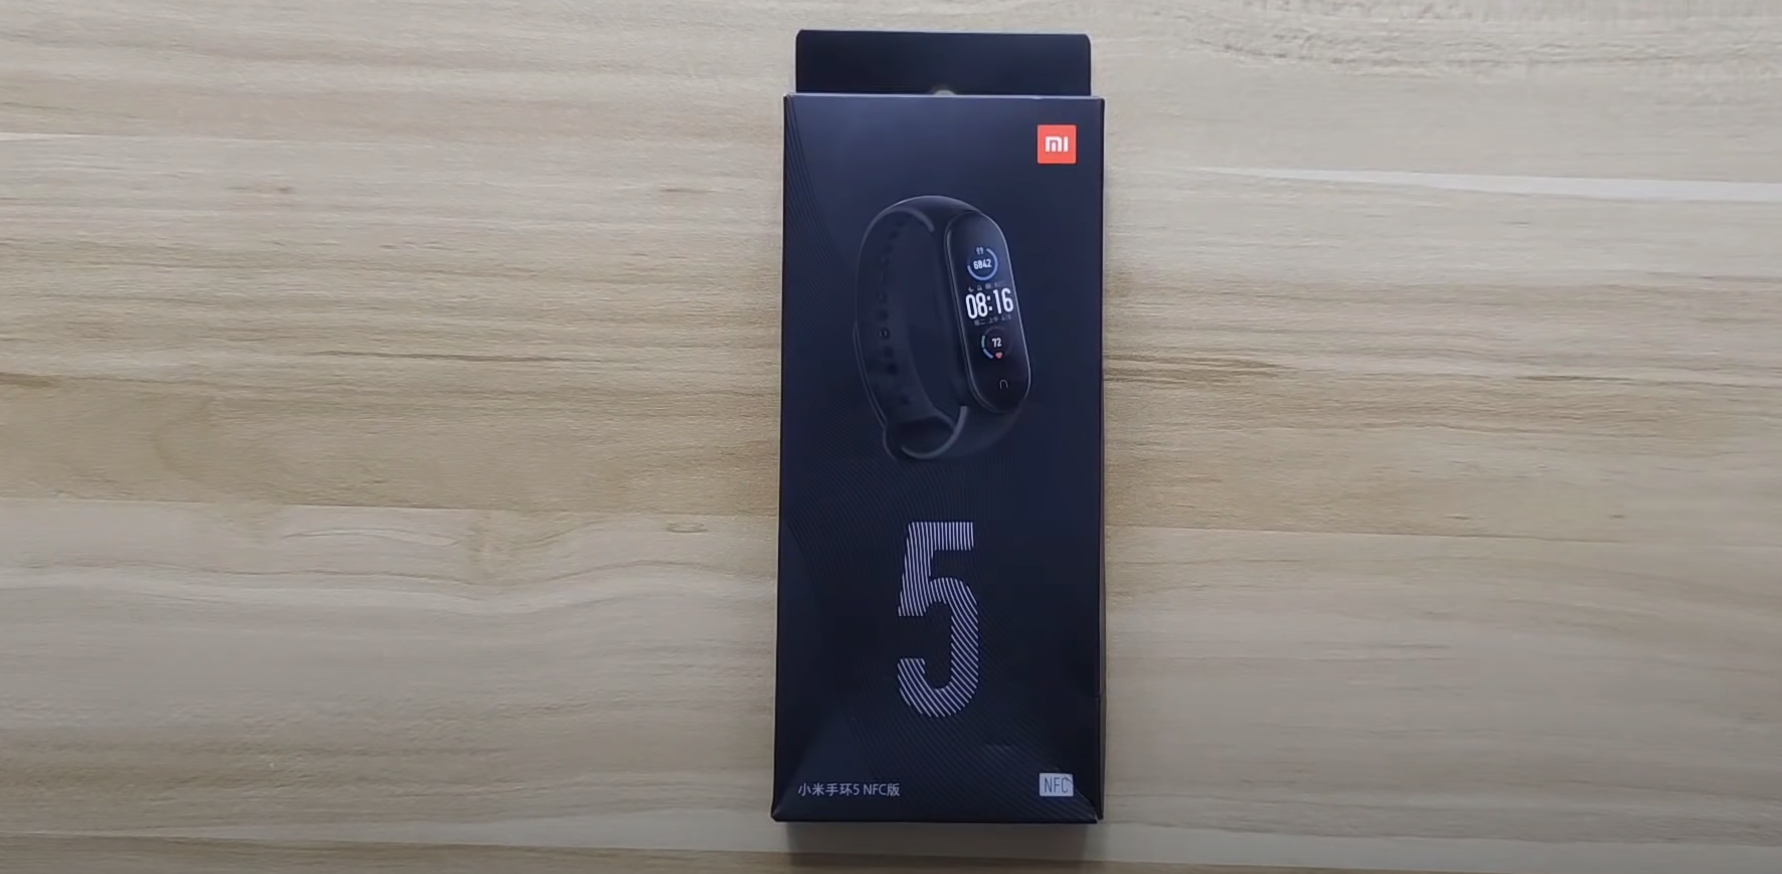 Xiaomi MI Band 5 Review: Best Fitness Band, Is It worth Buying?